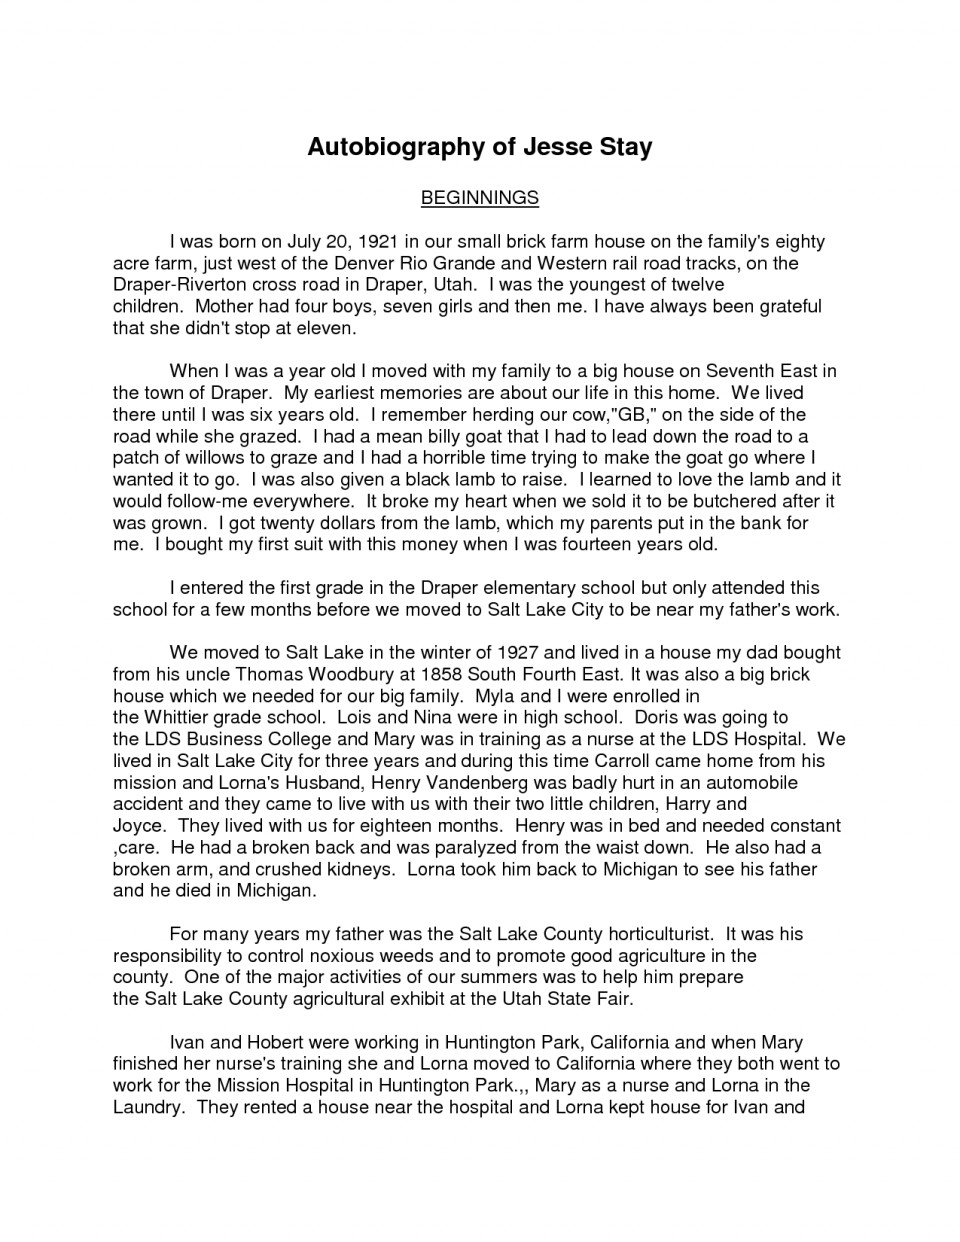 019 How To Write Autobiography Essay Samples 87168 Exceptional A An Introduction Autobiographical For College Grad School 960